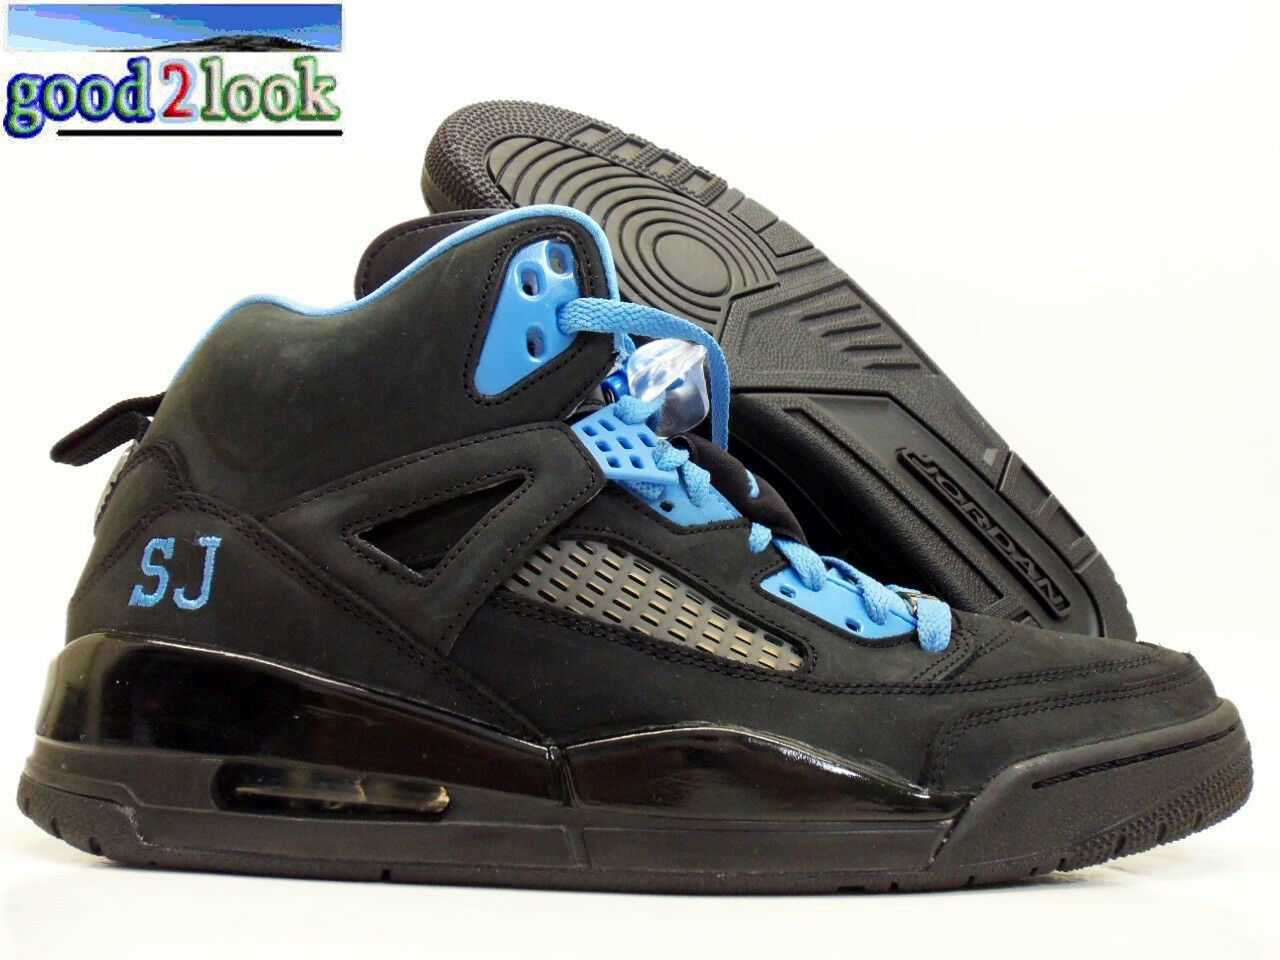 NIKE AIR JORDAN SPIZIKE ID BASKETBALL BLACK/SKY BLUE SIZE MEN'S 12 [605236-991]